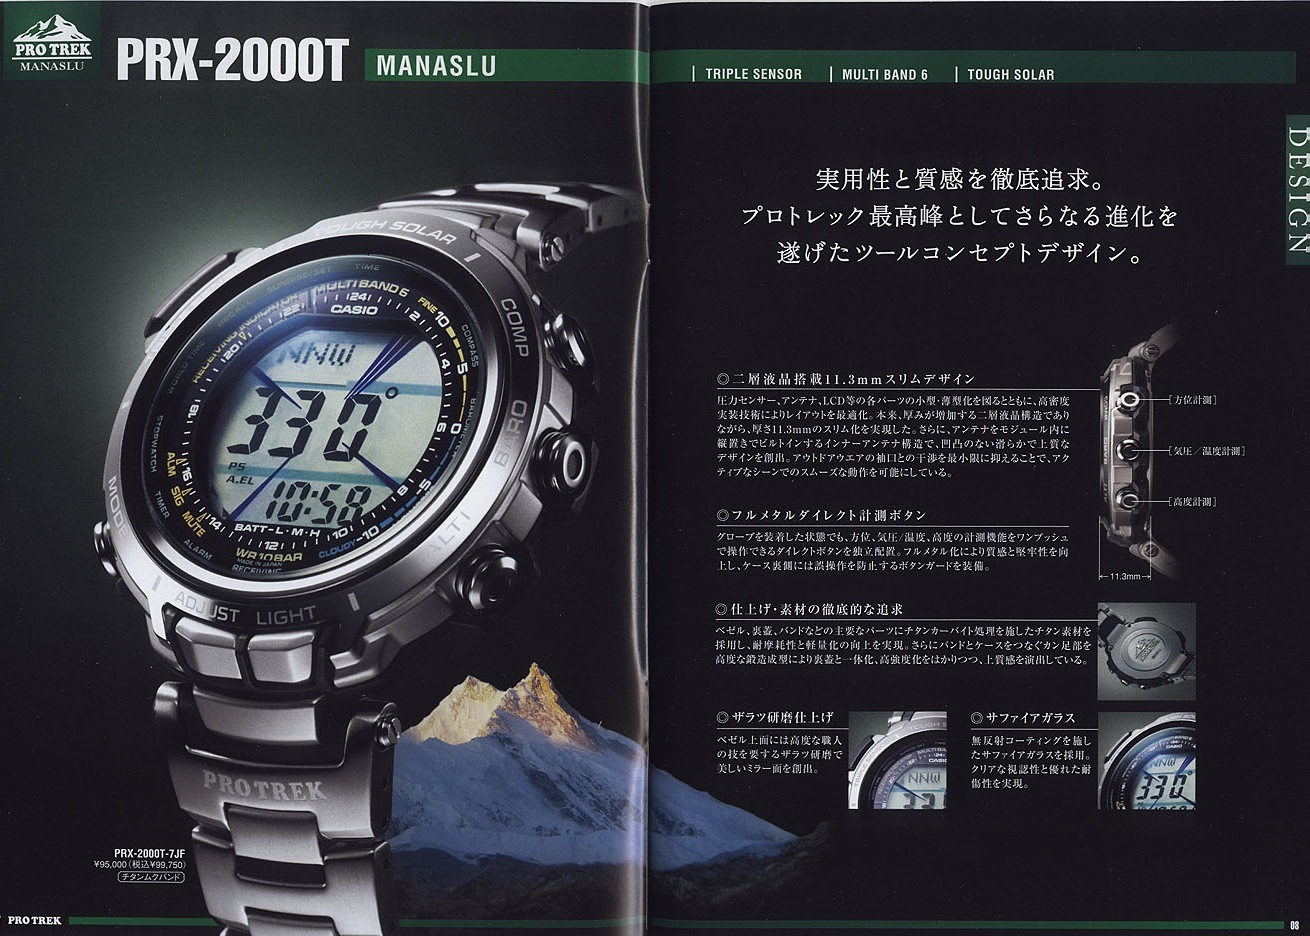 Casio-Pro-Trek-Collection-Summer-2009-Page-5.jpg